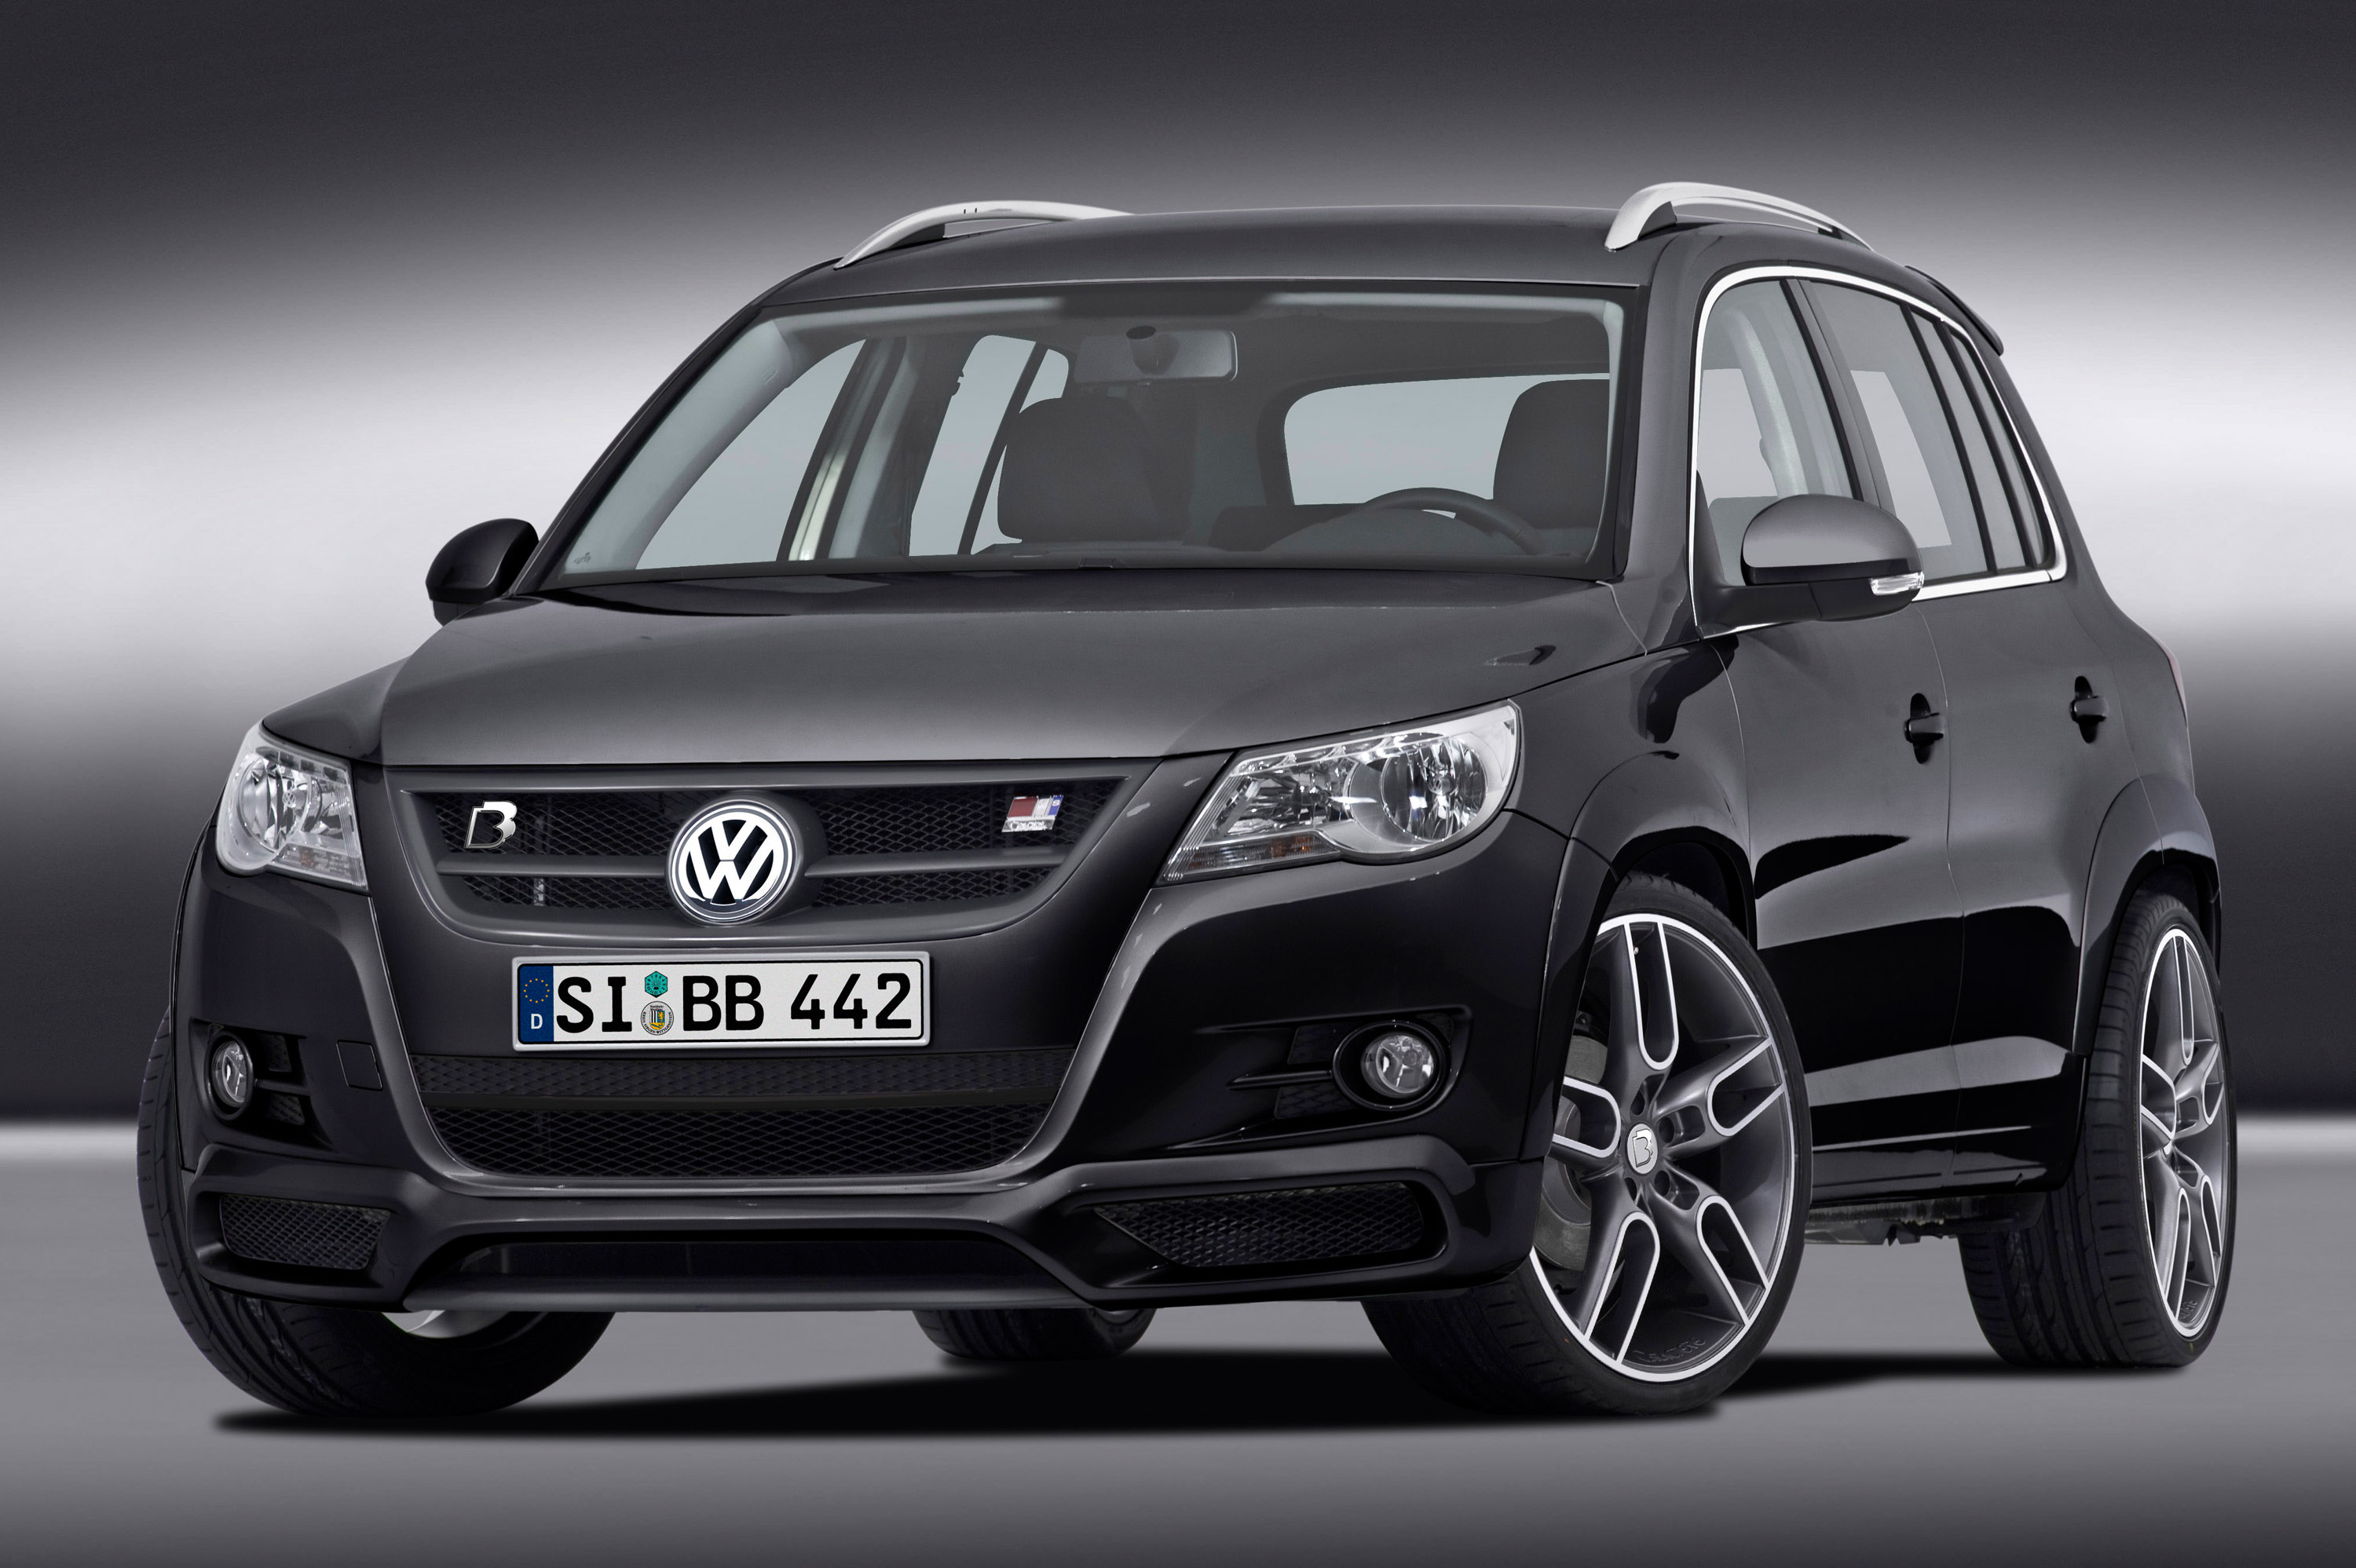 """The """"smallest"""" VW Tiguan engine, the 1.4tsi with its 150hp / 240Nm ..."""